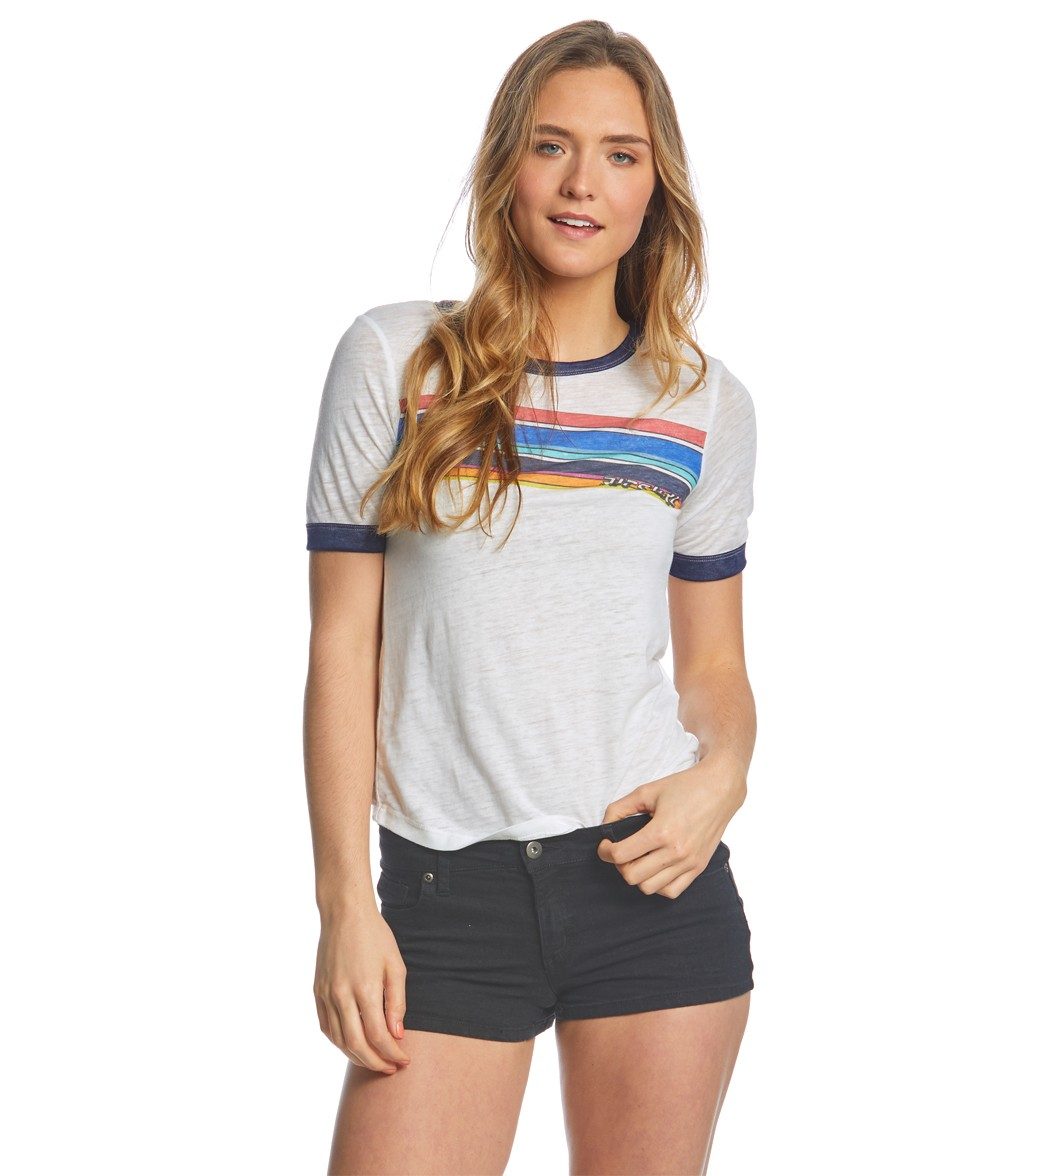 96119635f5809 Rip Curl Women's Surforama Ringer Tee at SwimOutlet.com